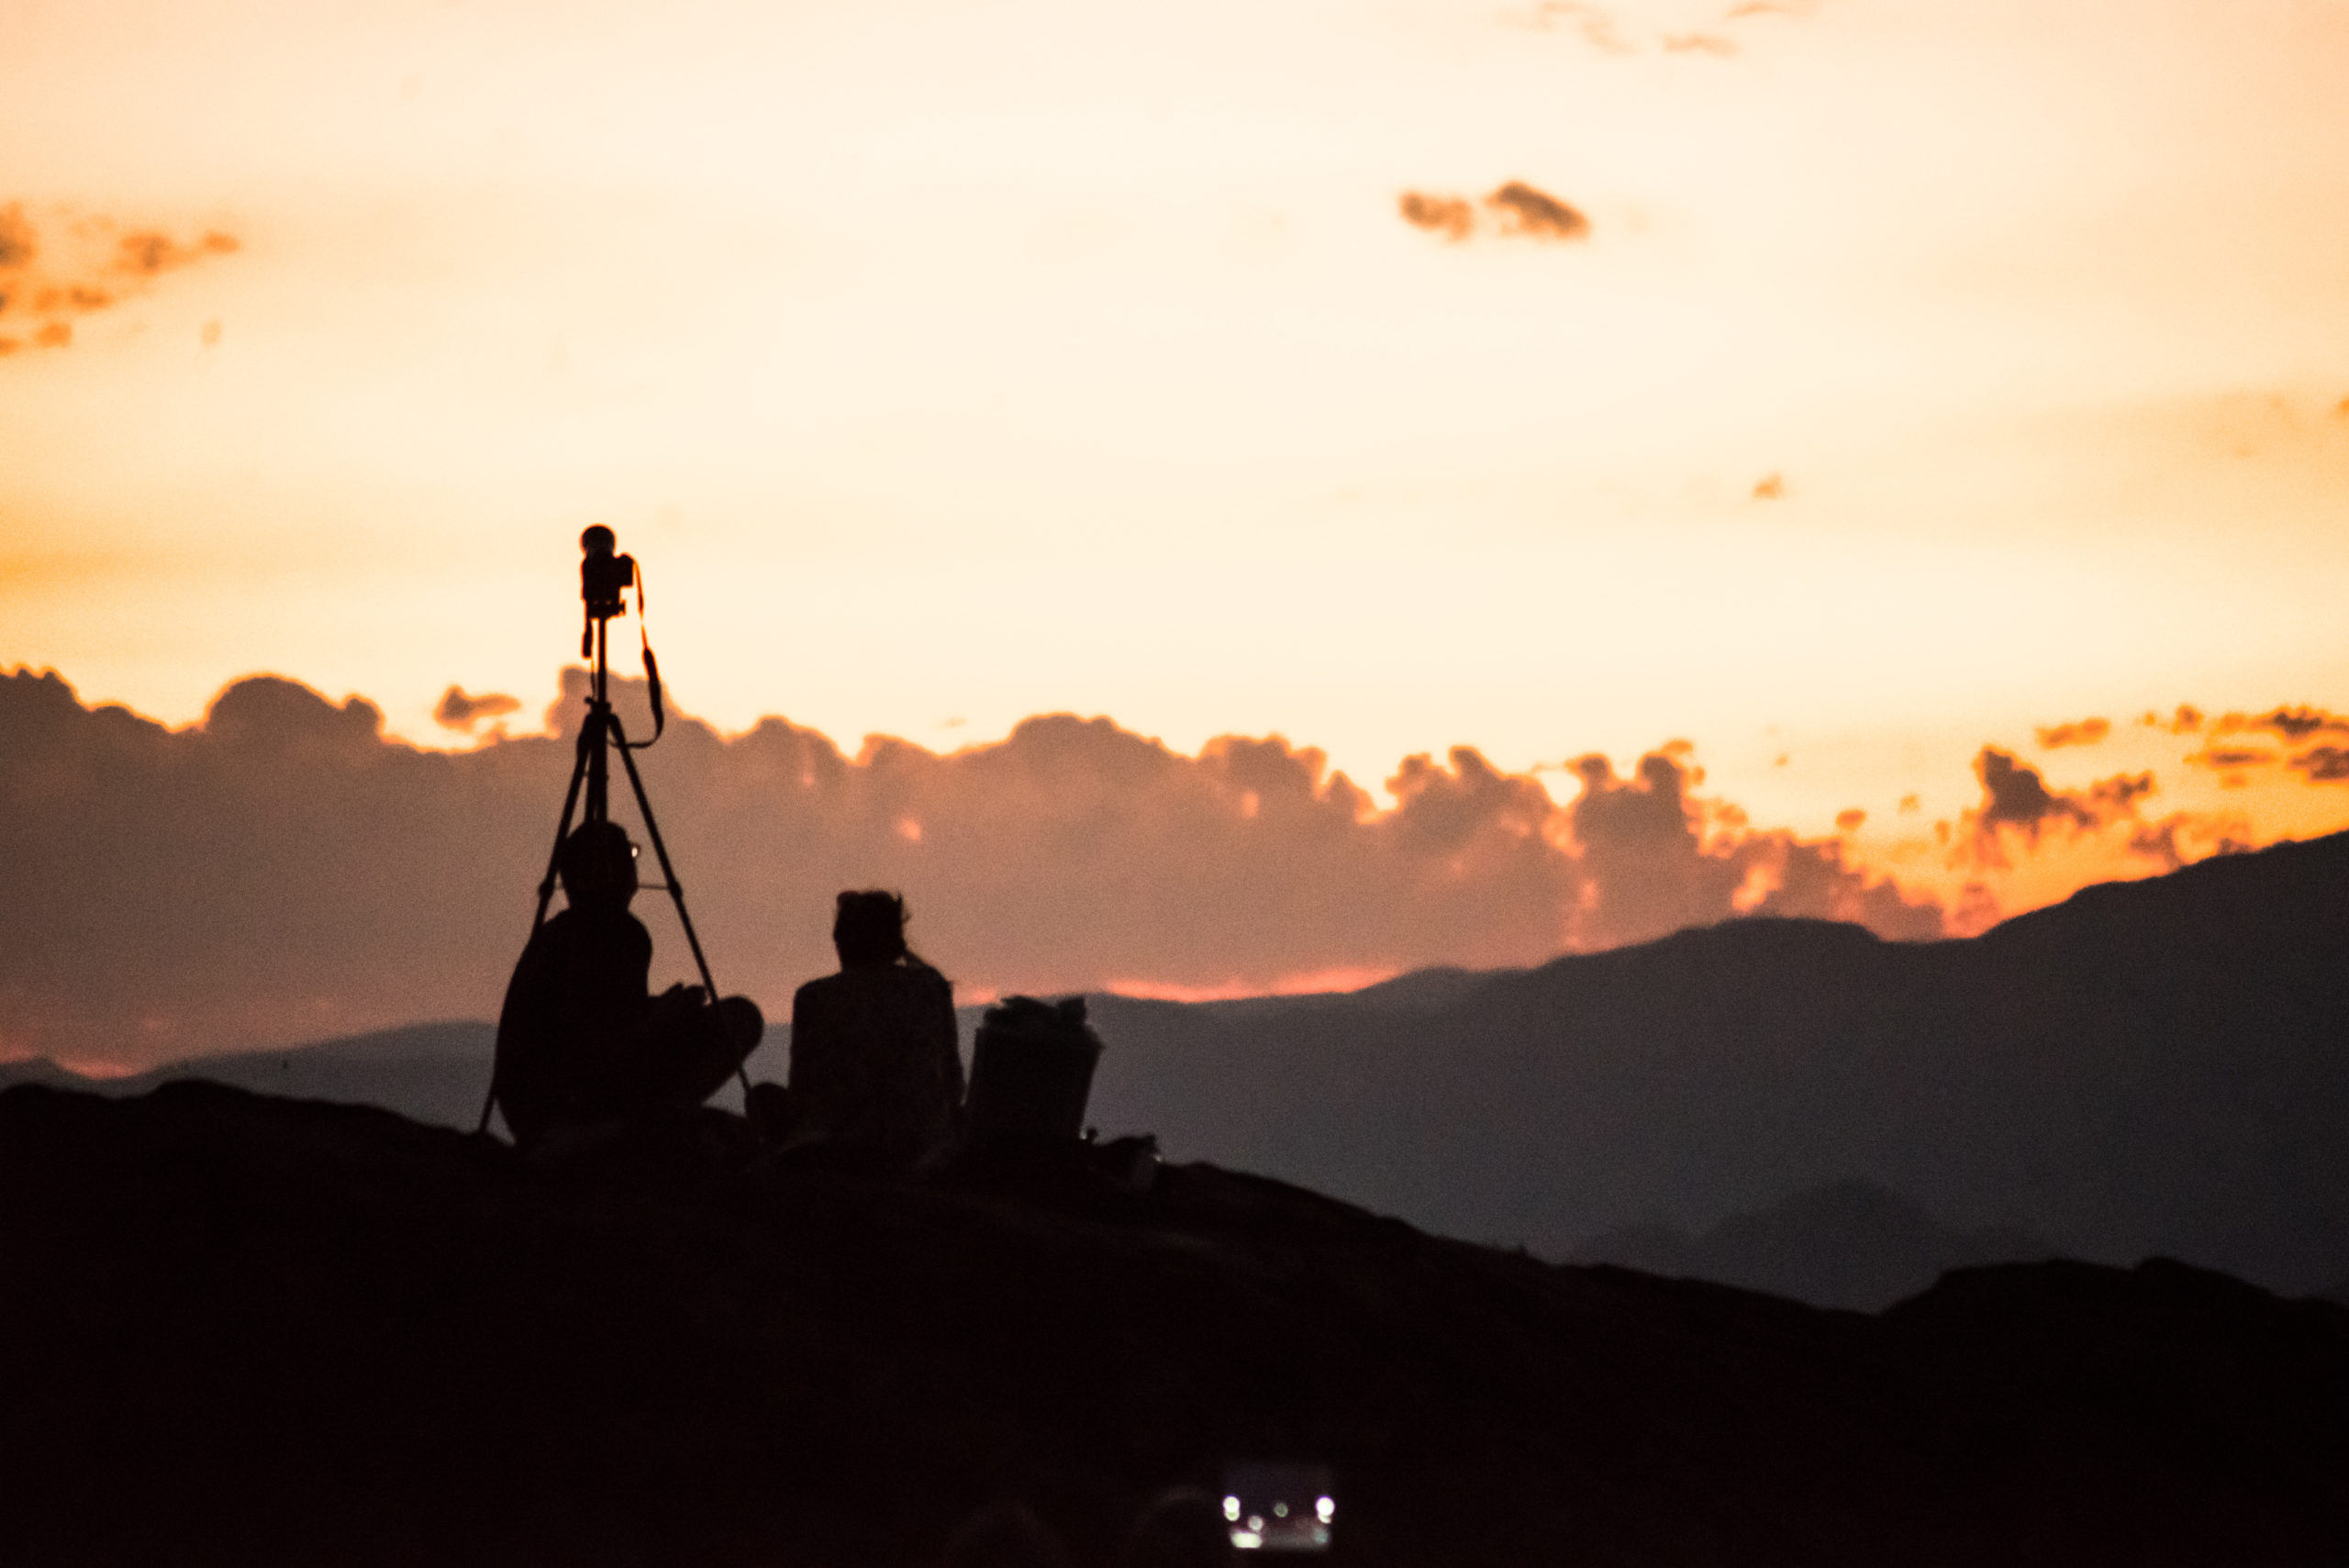 Photographers and visitors are waiting to see Neowise comet in the sky above Perpignan. Photography by Stephane Ferrer Yulianti. Photographes et curieux sont venu voir la comete neowise dans le ciel au dessus de Perpignan. Photographie de Stephane Ferrer Yulianti.